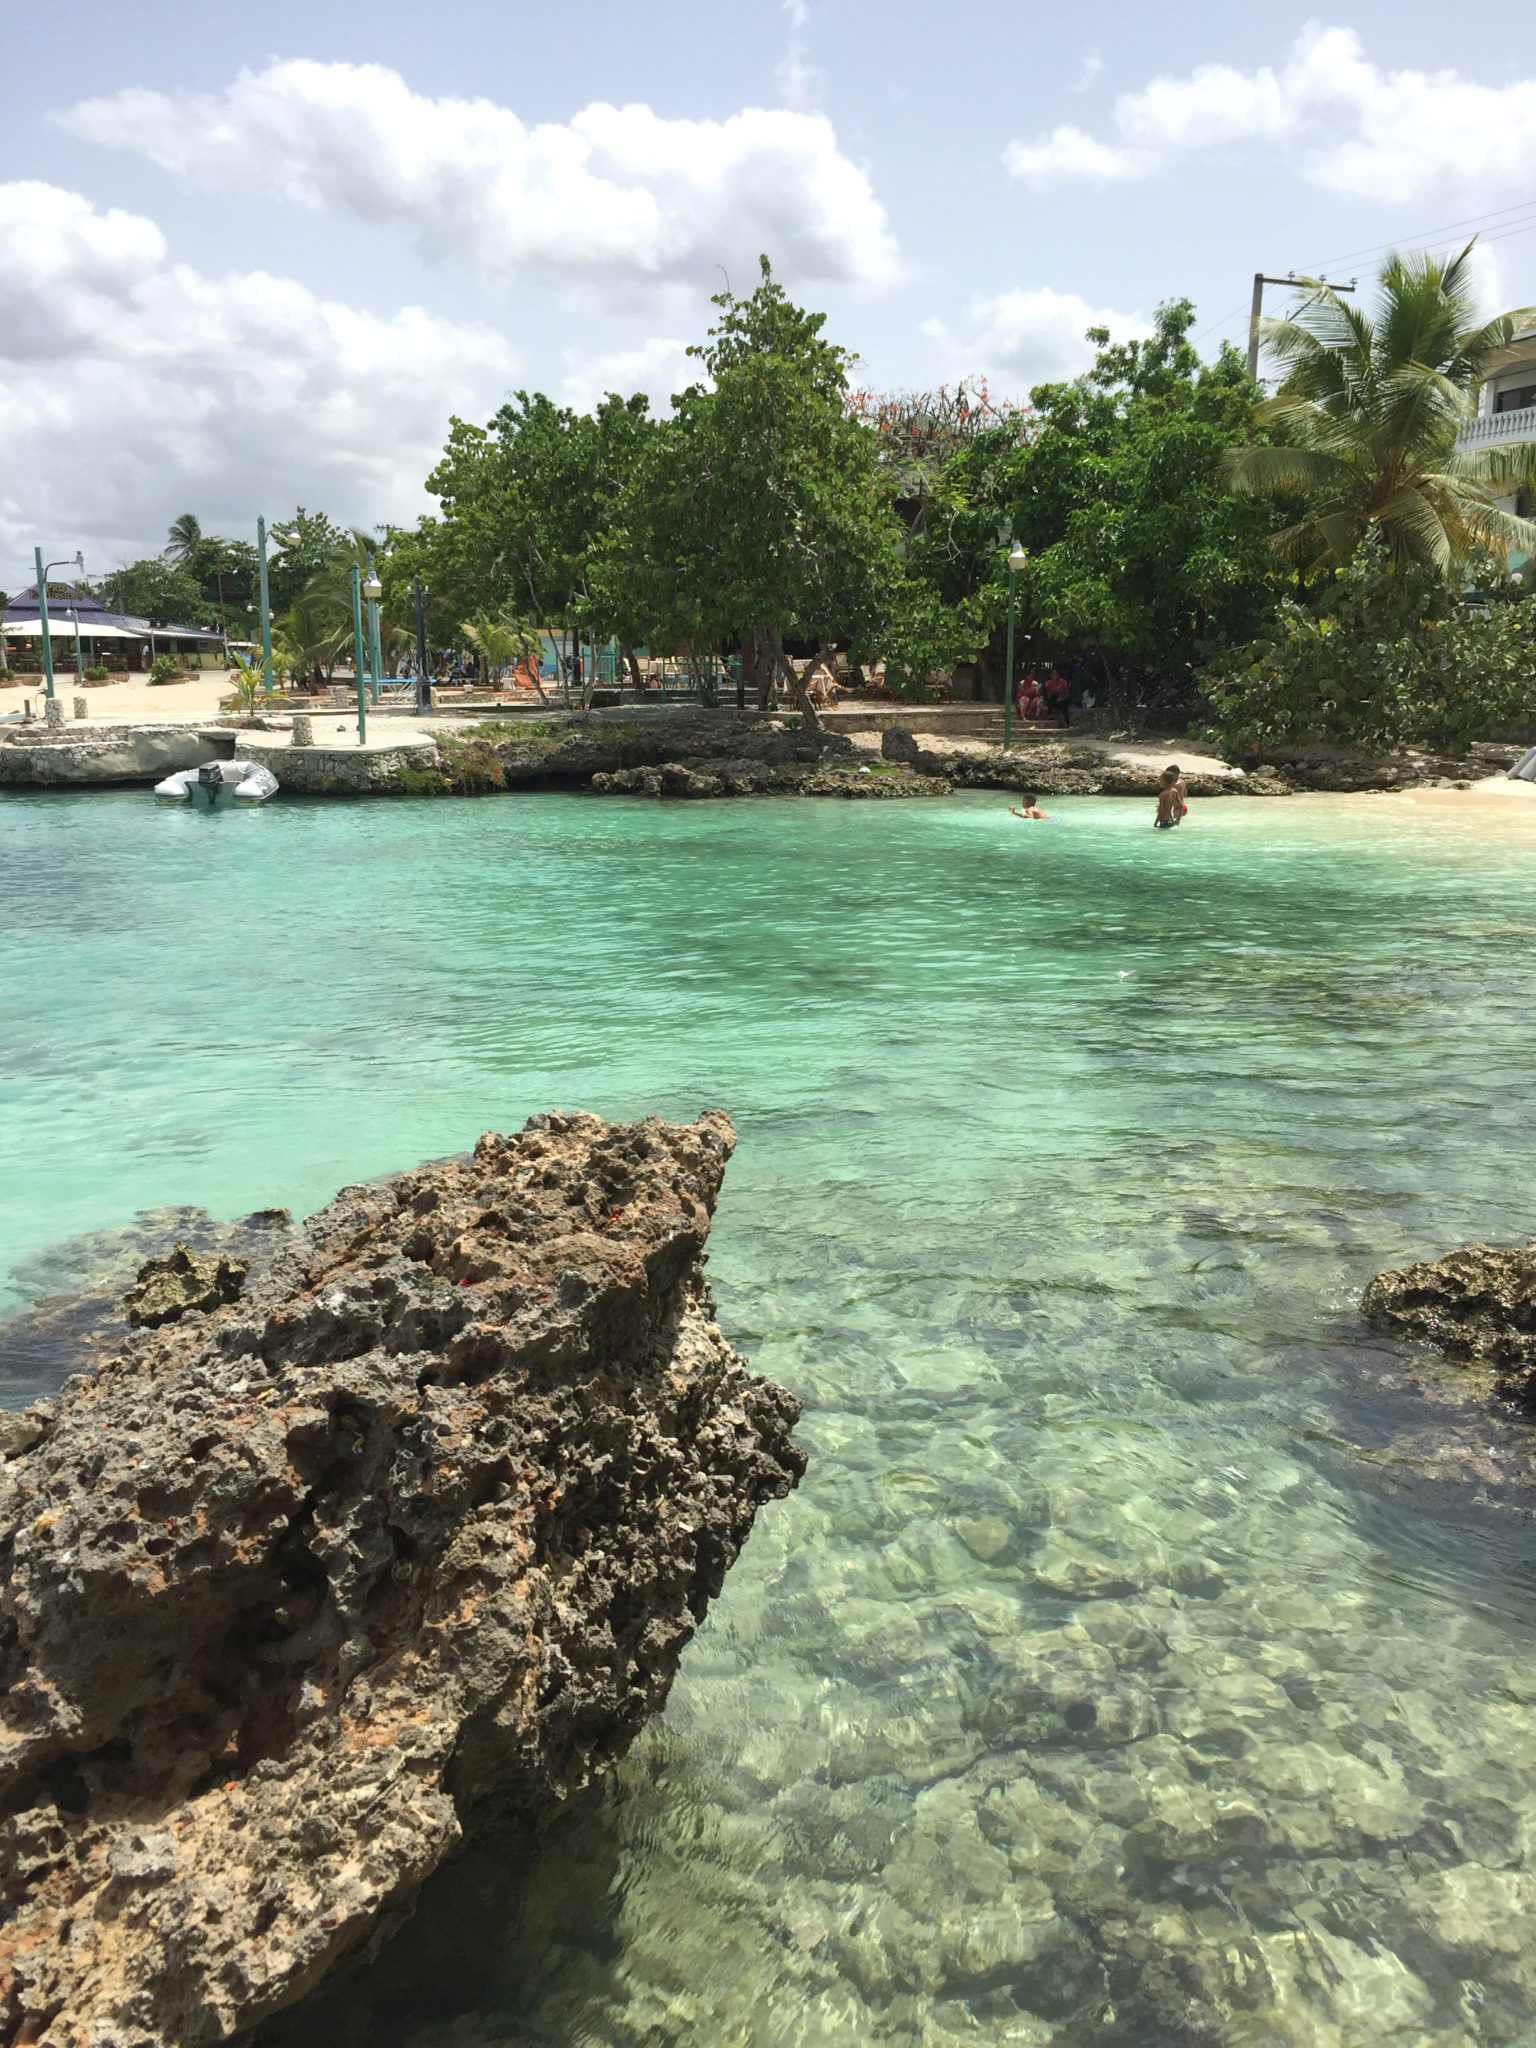 Republique_dominicaine_roadtrip_bayahibe_voyage_rivage